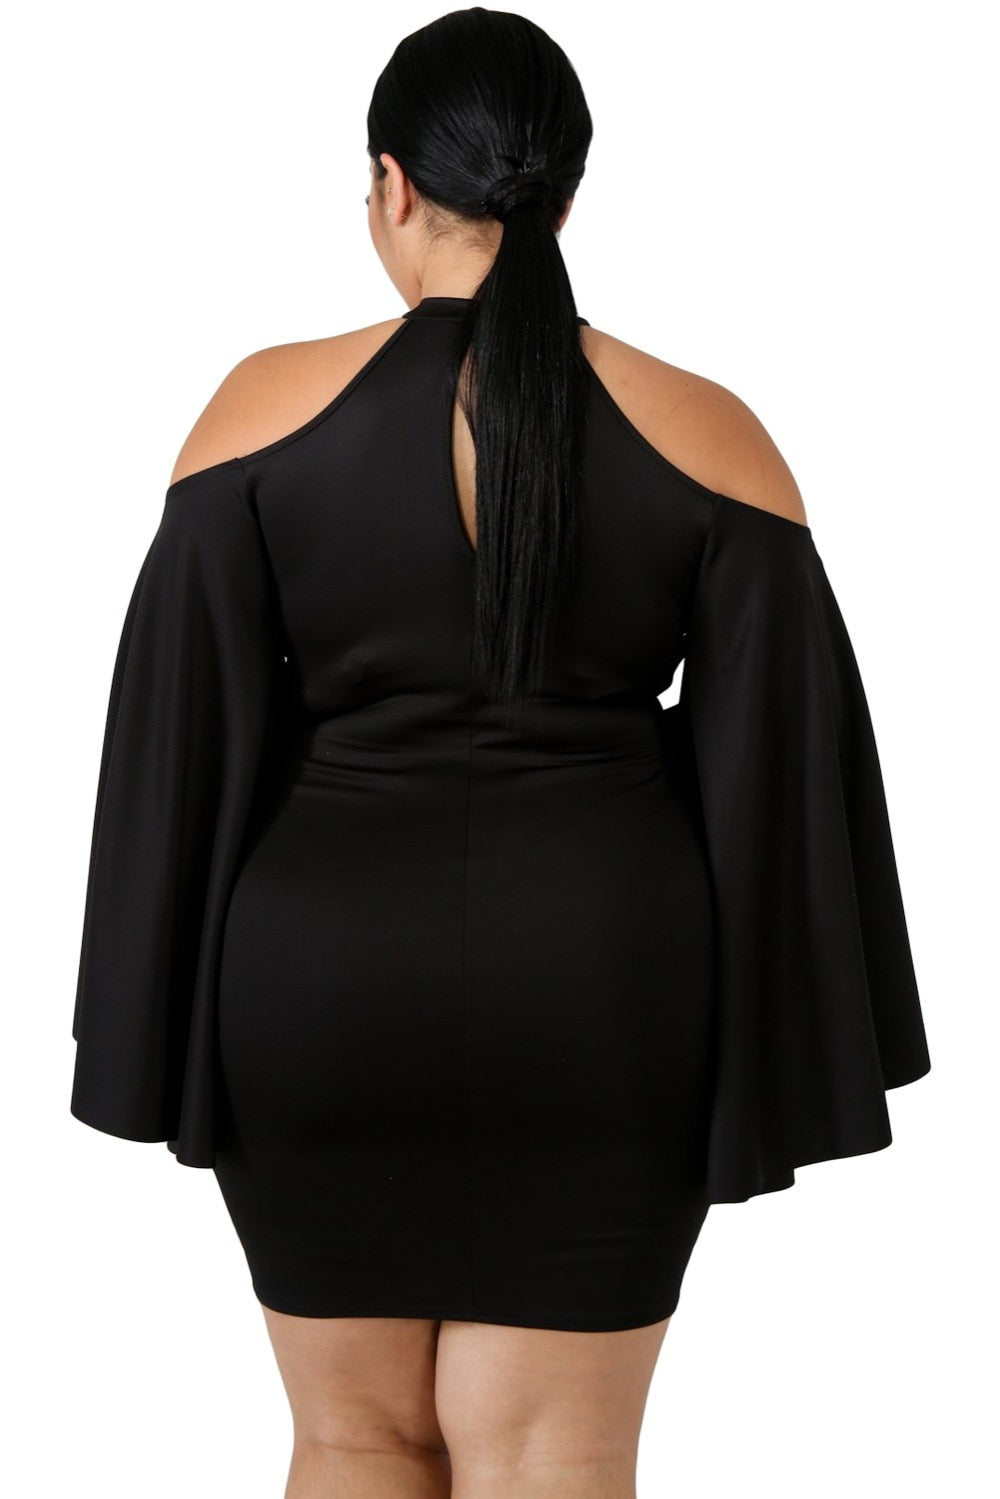 Cold Shoulder Sweetneck Plus Size Bodycon Party Mini Dress Woven Trends